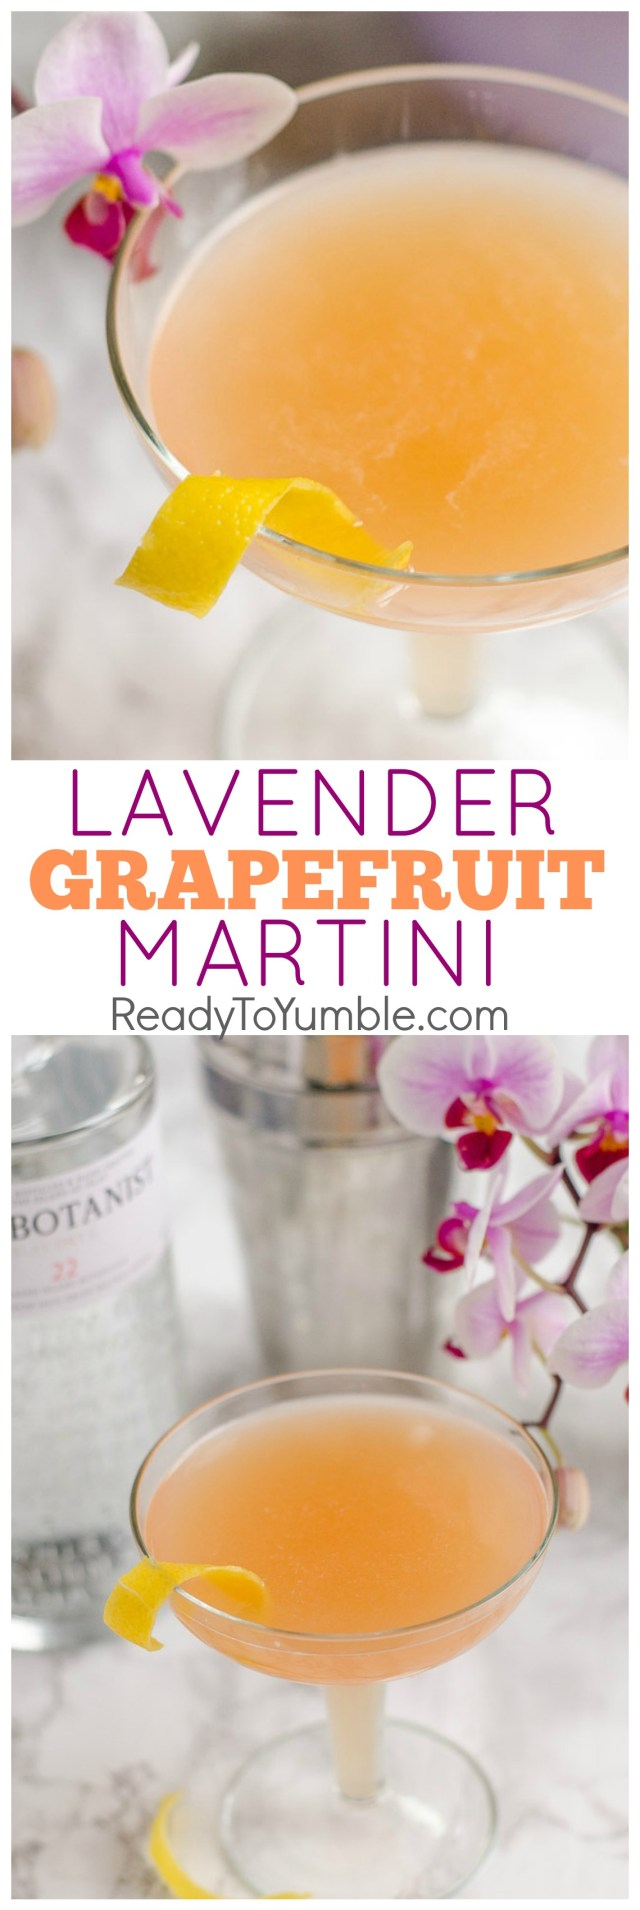 This Lavender Grapefruit Martini is a fresh and flavorful cocktail, just right for welcoming spring.